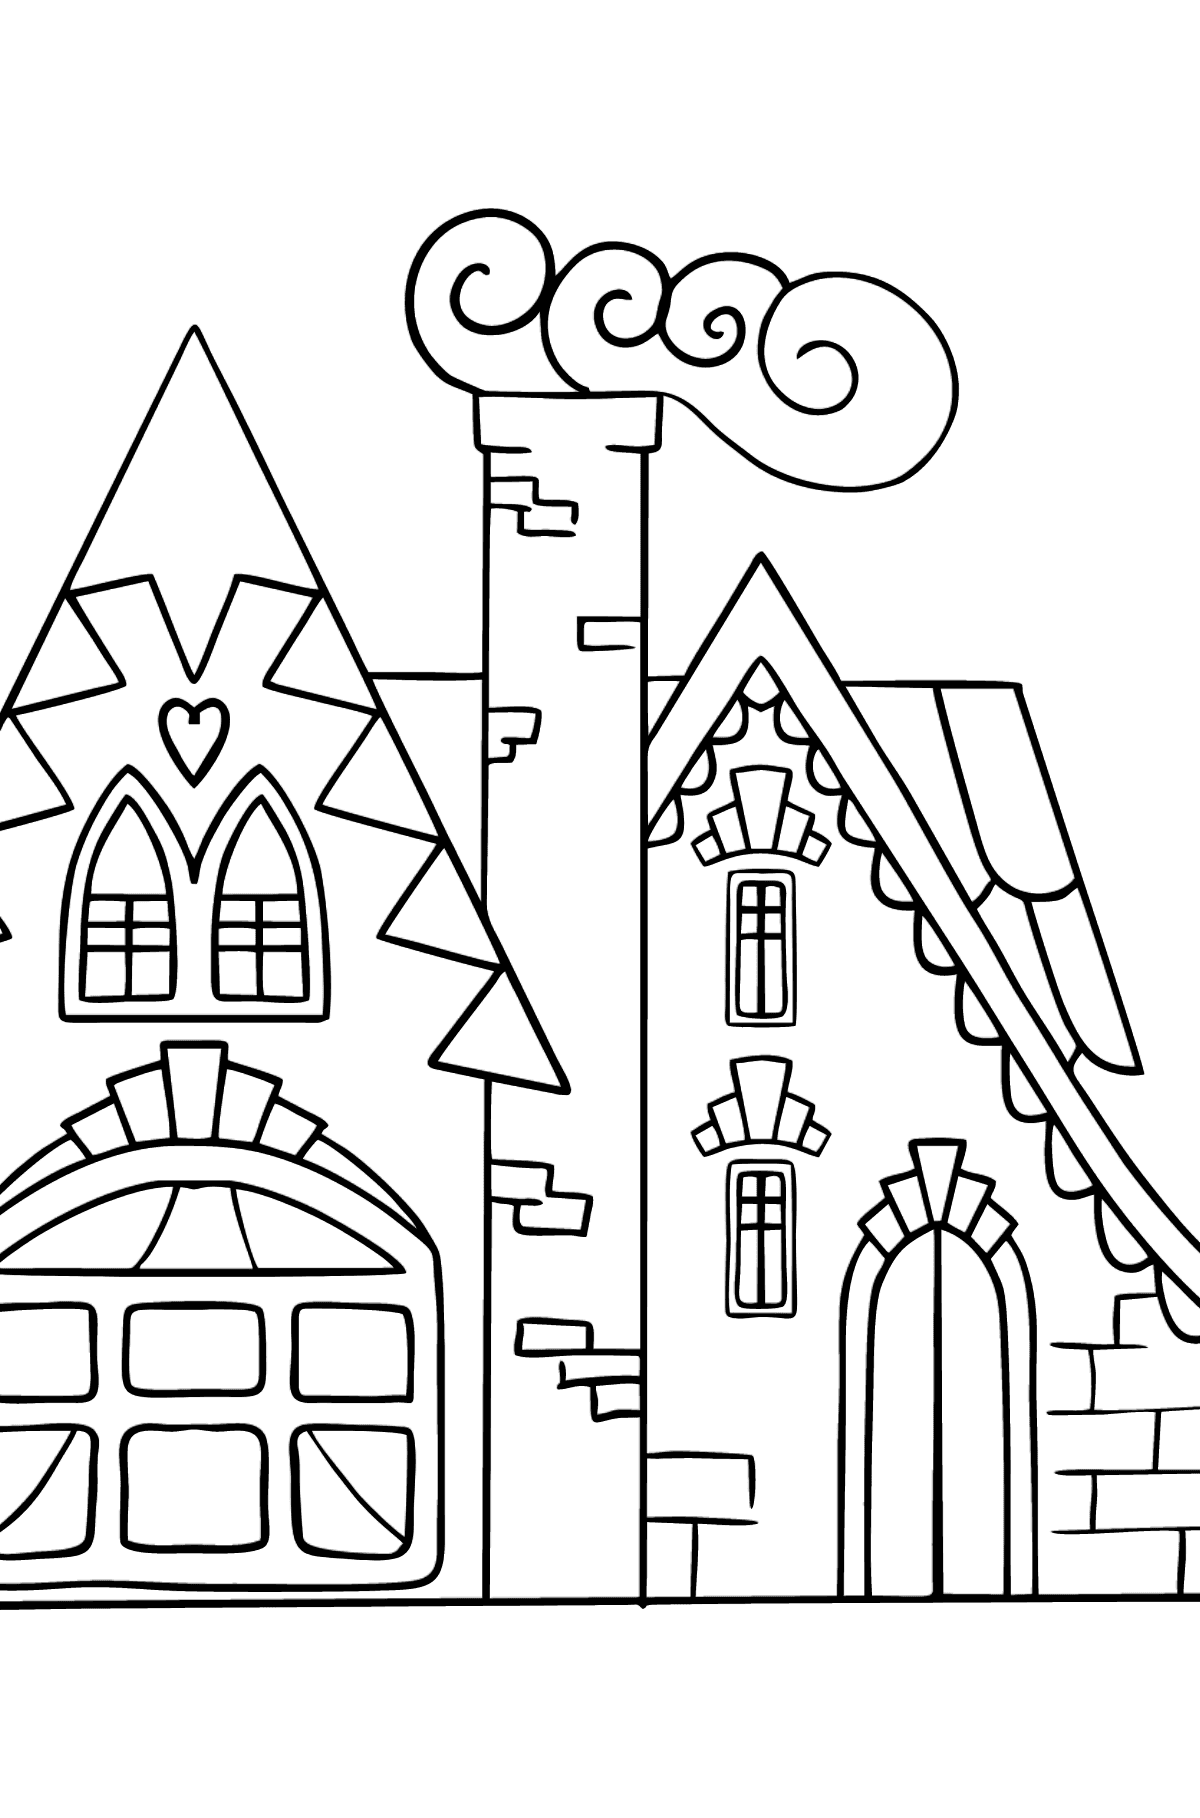 Complex Coloring Page - A Charming House - Coloring Pages for Kids